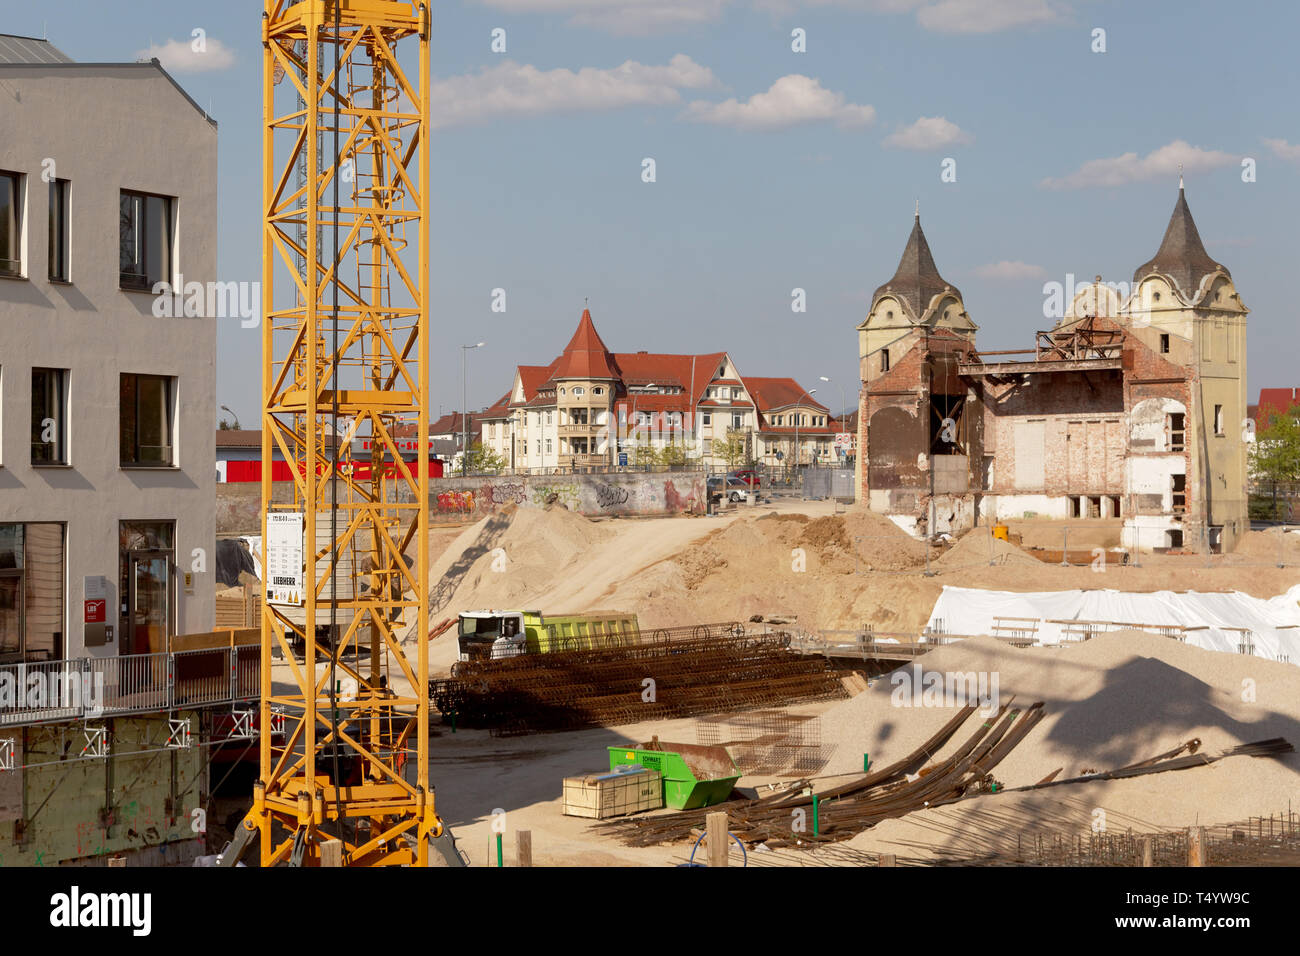 Offenburg, Ree Carre, building site, Germany Stock Photo